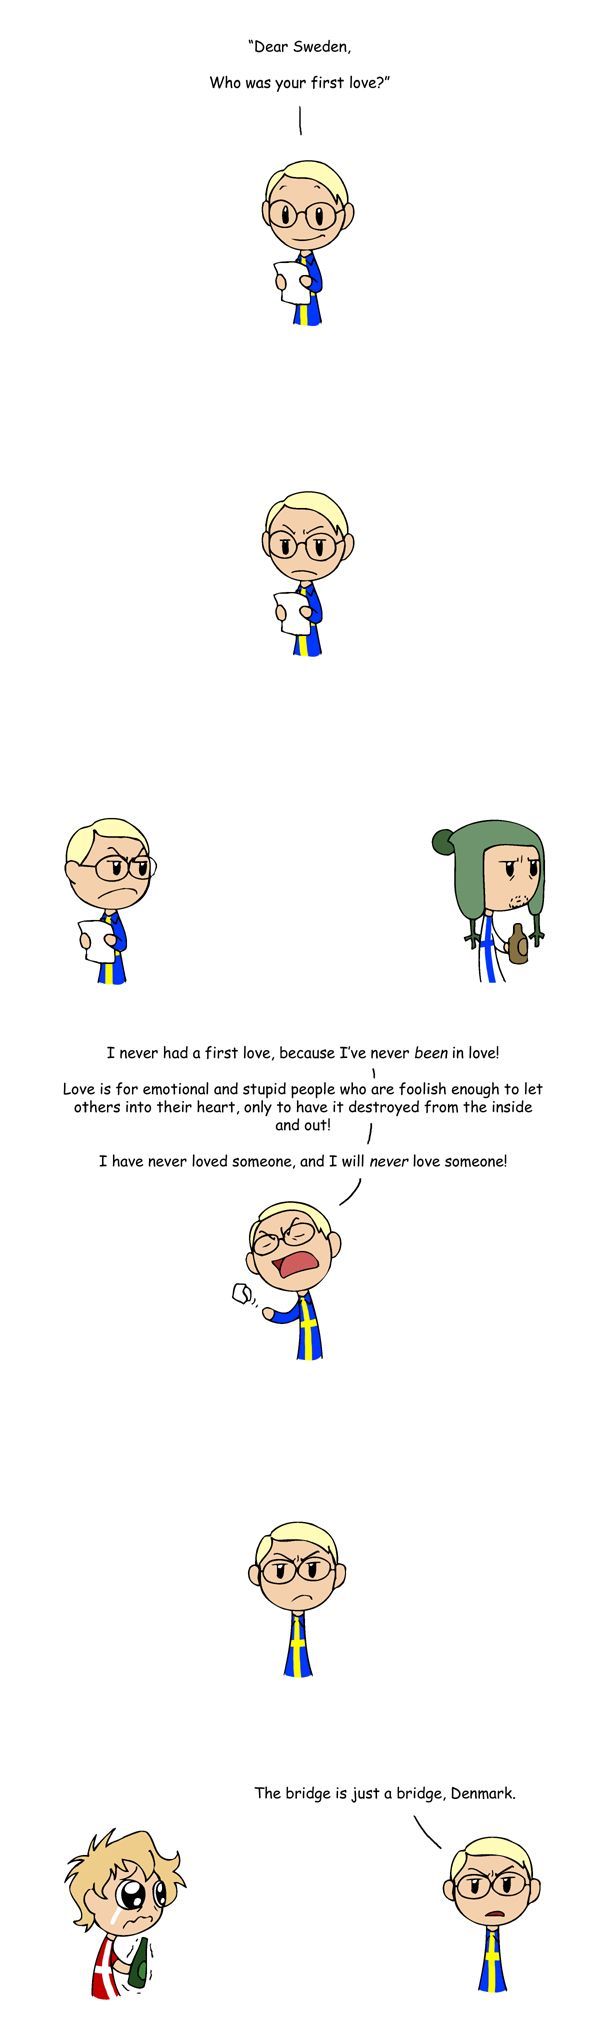 First Love - Scandinavia and the World